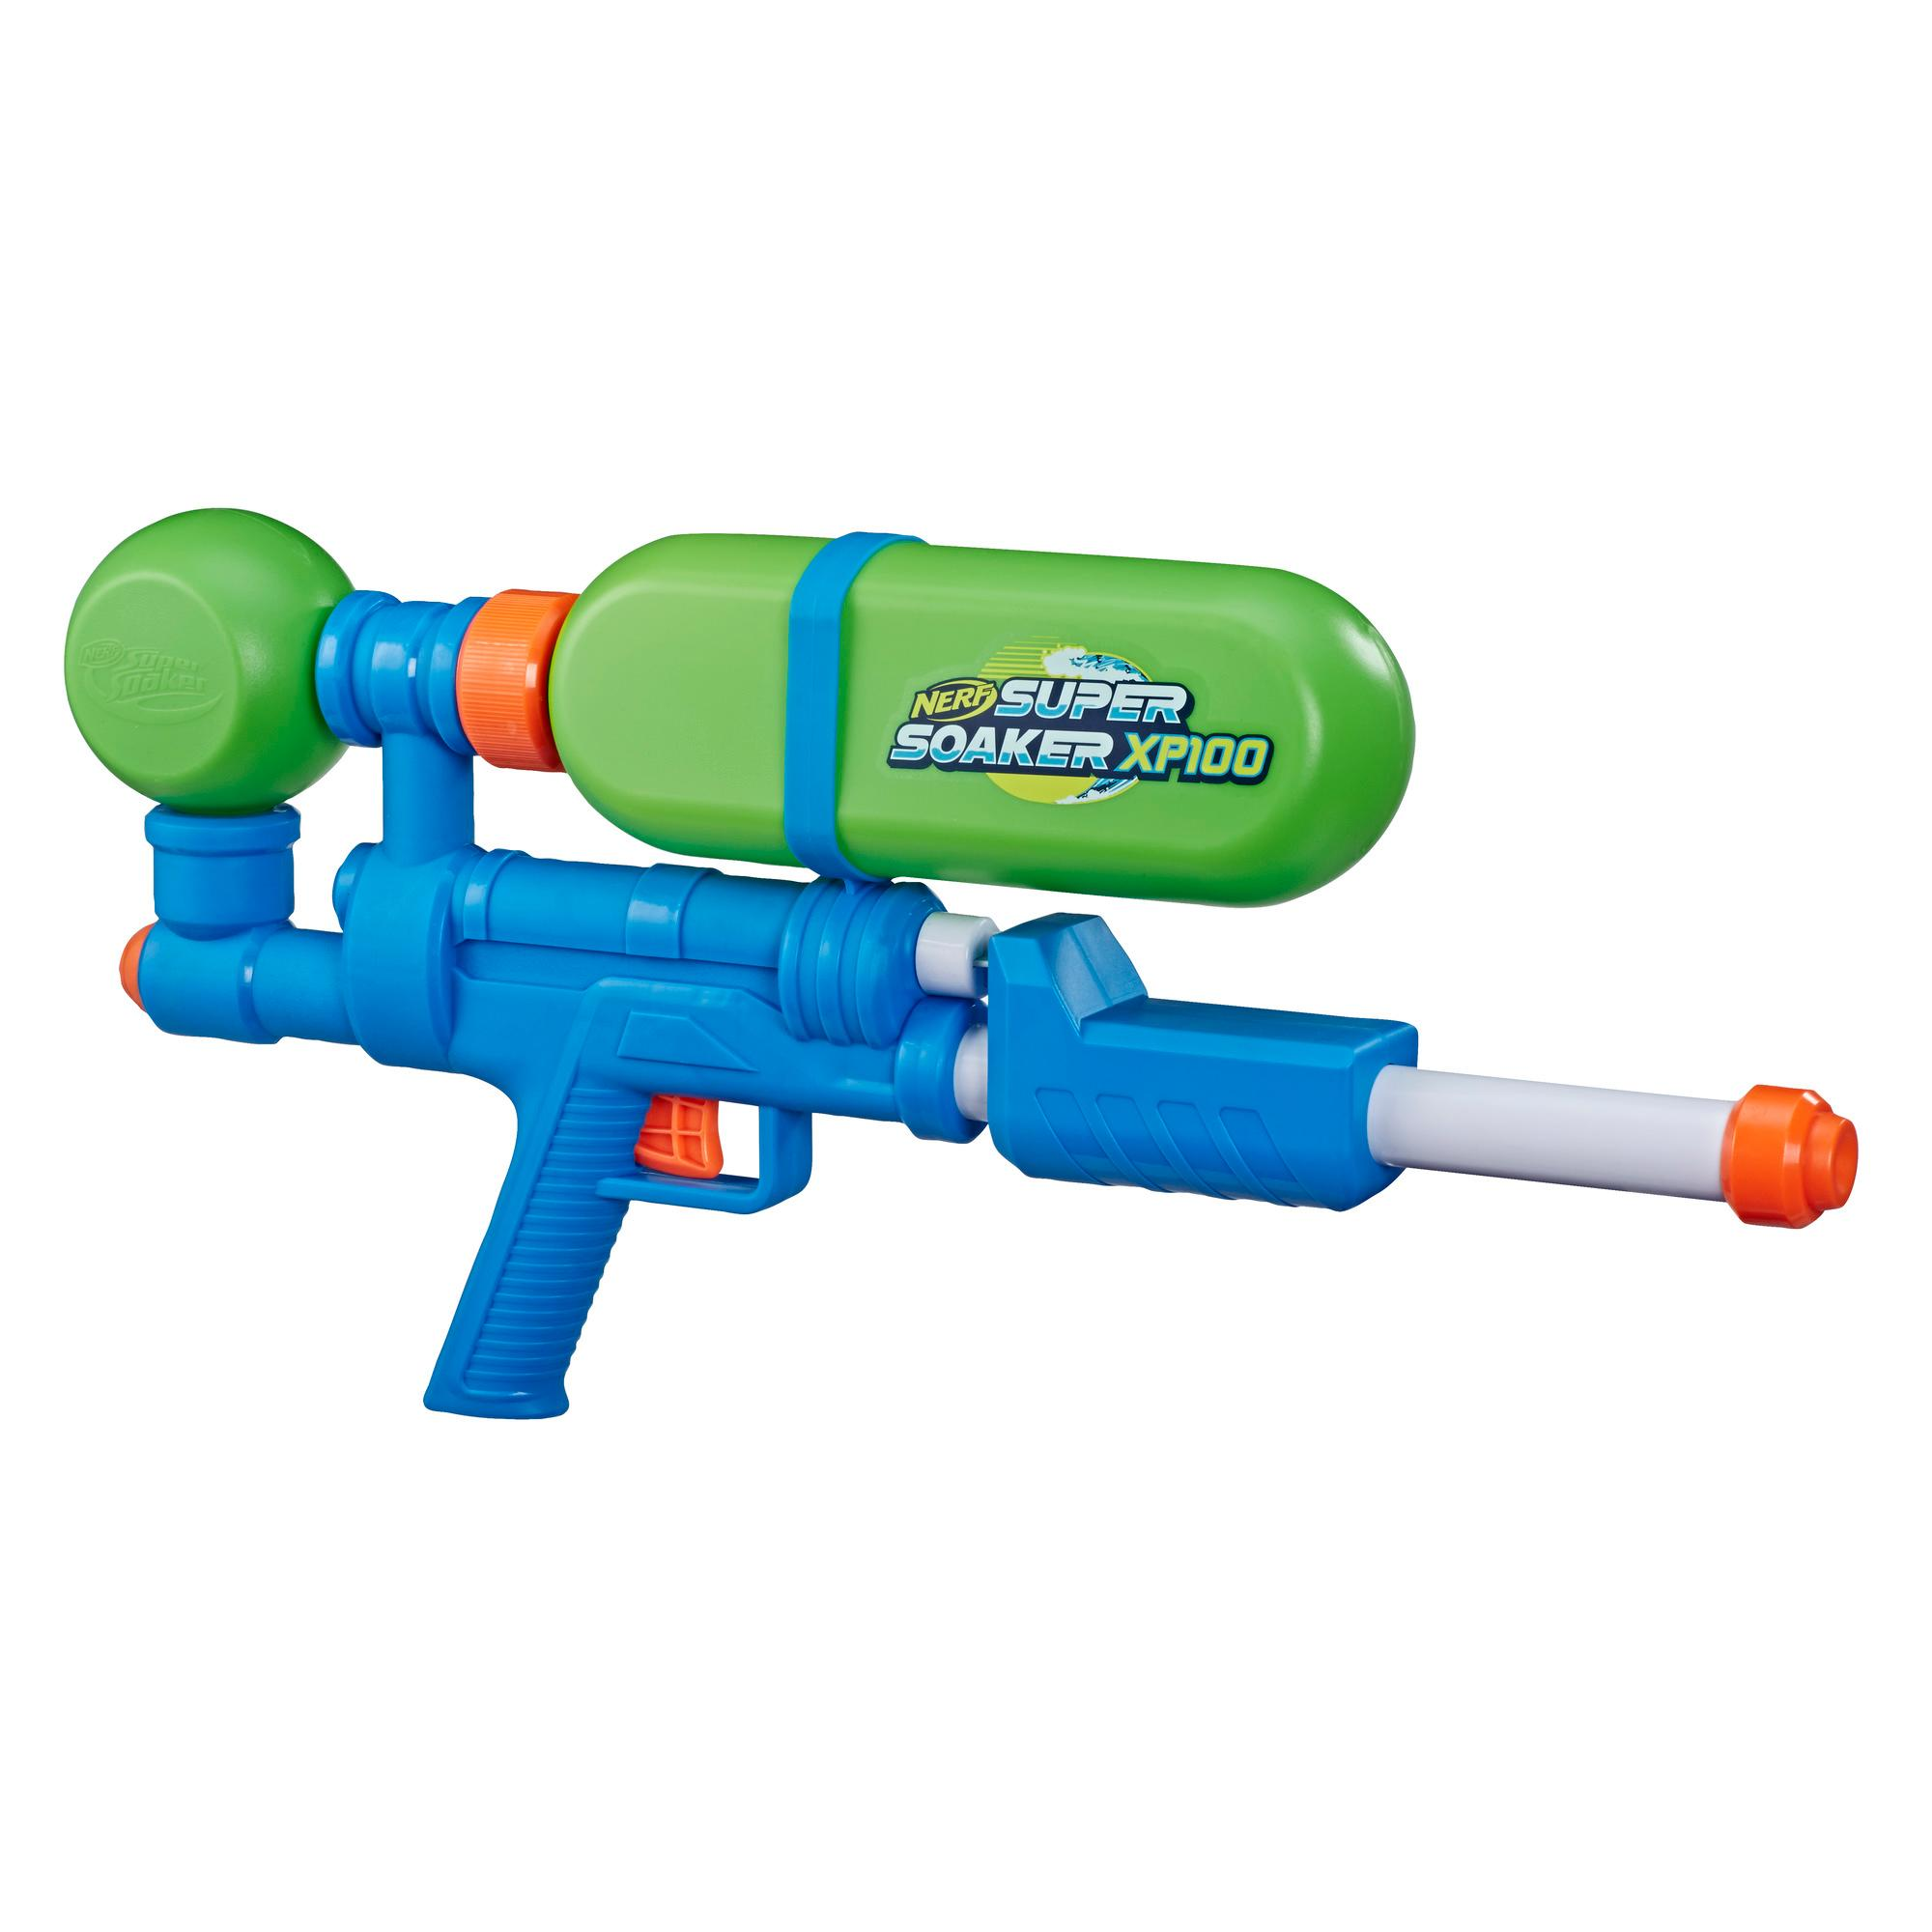 Nerf Super Soaker XP100 Water Blaster -- Air-Pressurized Continuous Blast -- Removable Tank -- For Kids, Teens, Adults